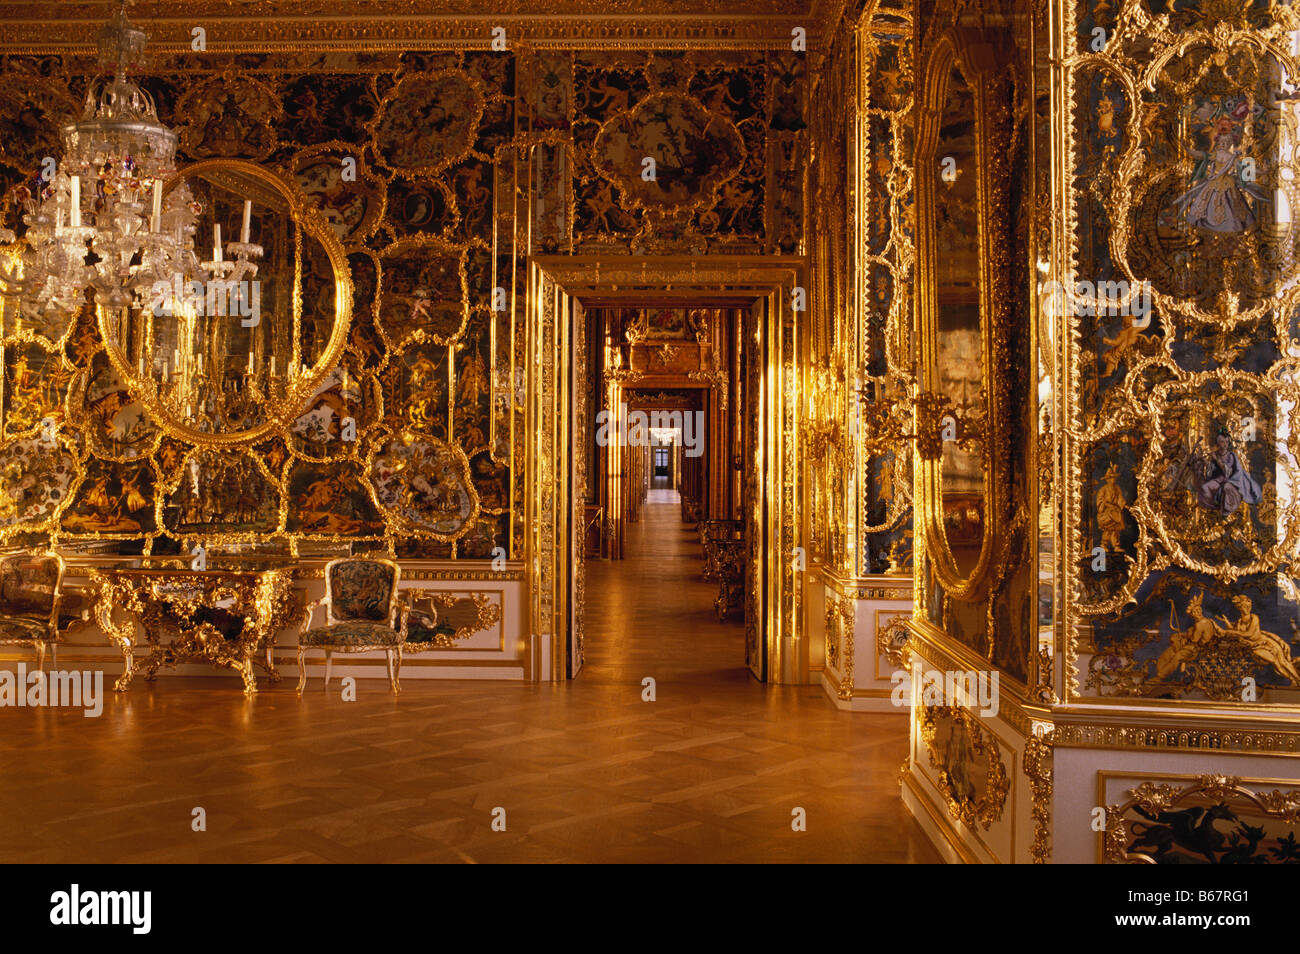 Image result for Wurzburg room of mirrors